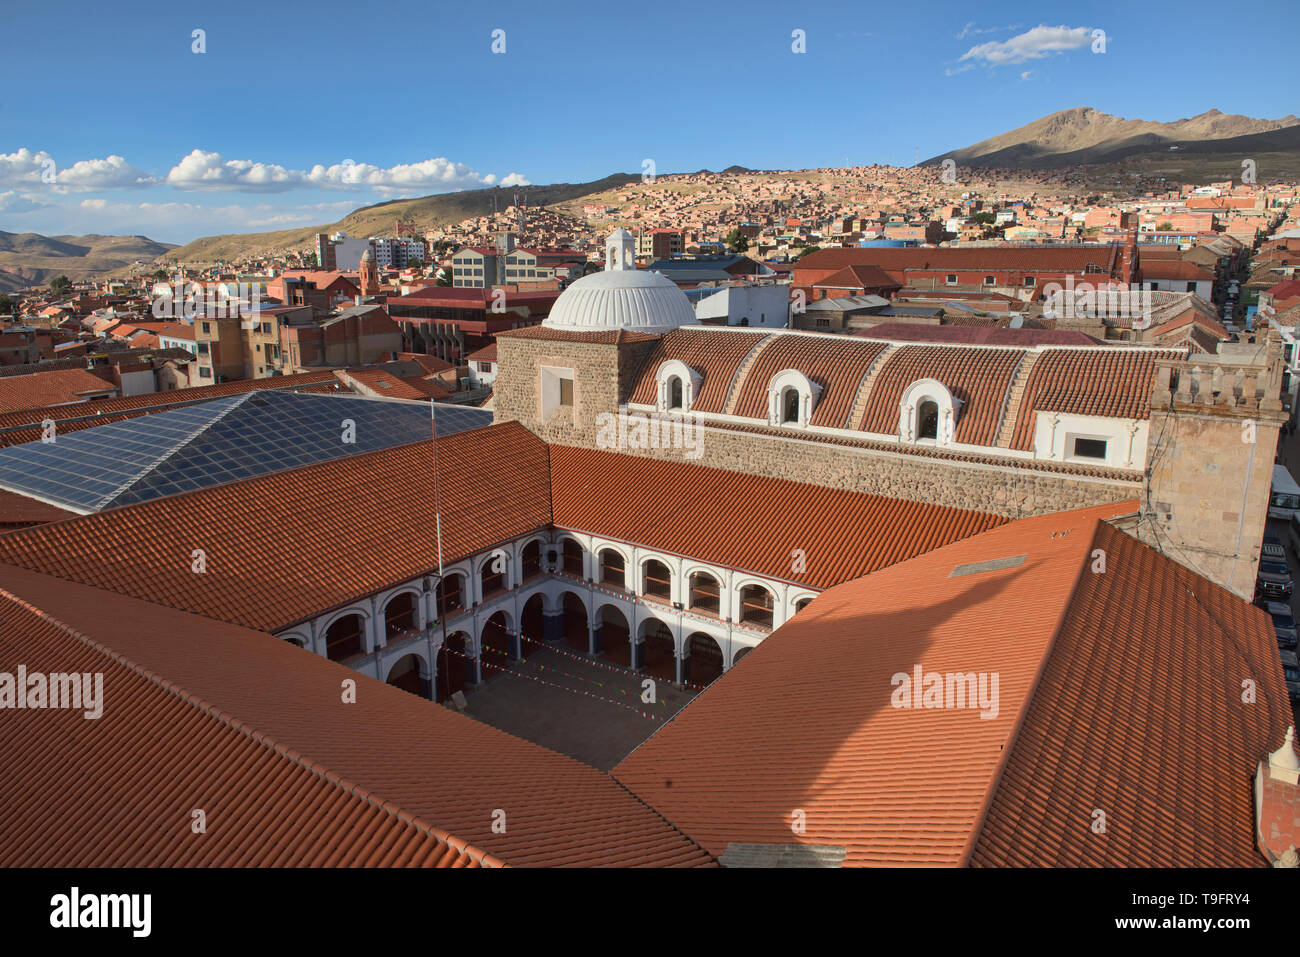 The Pichincha National College seen from the Cathedral Basilica, Potosí, Bolivia - Stock Image